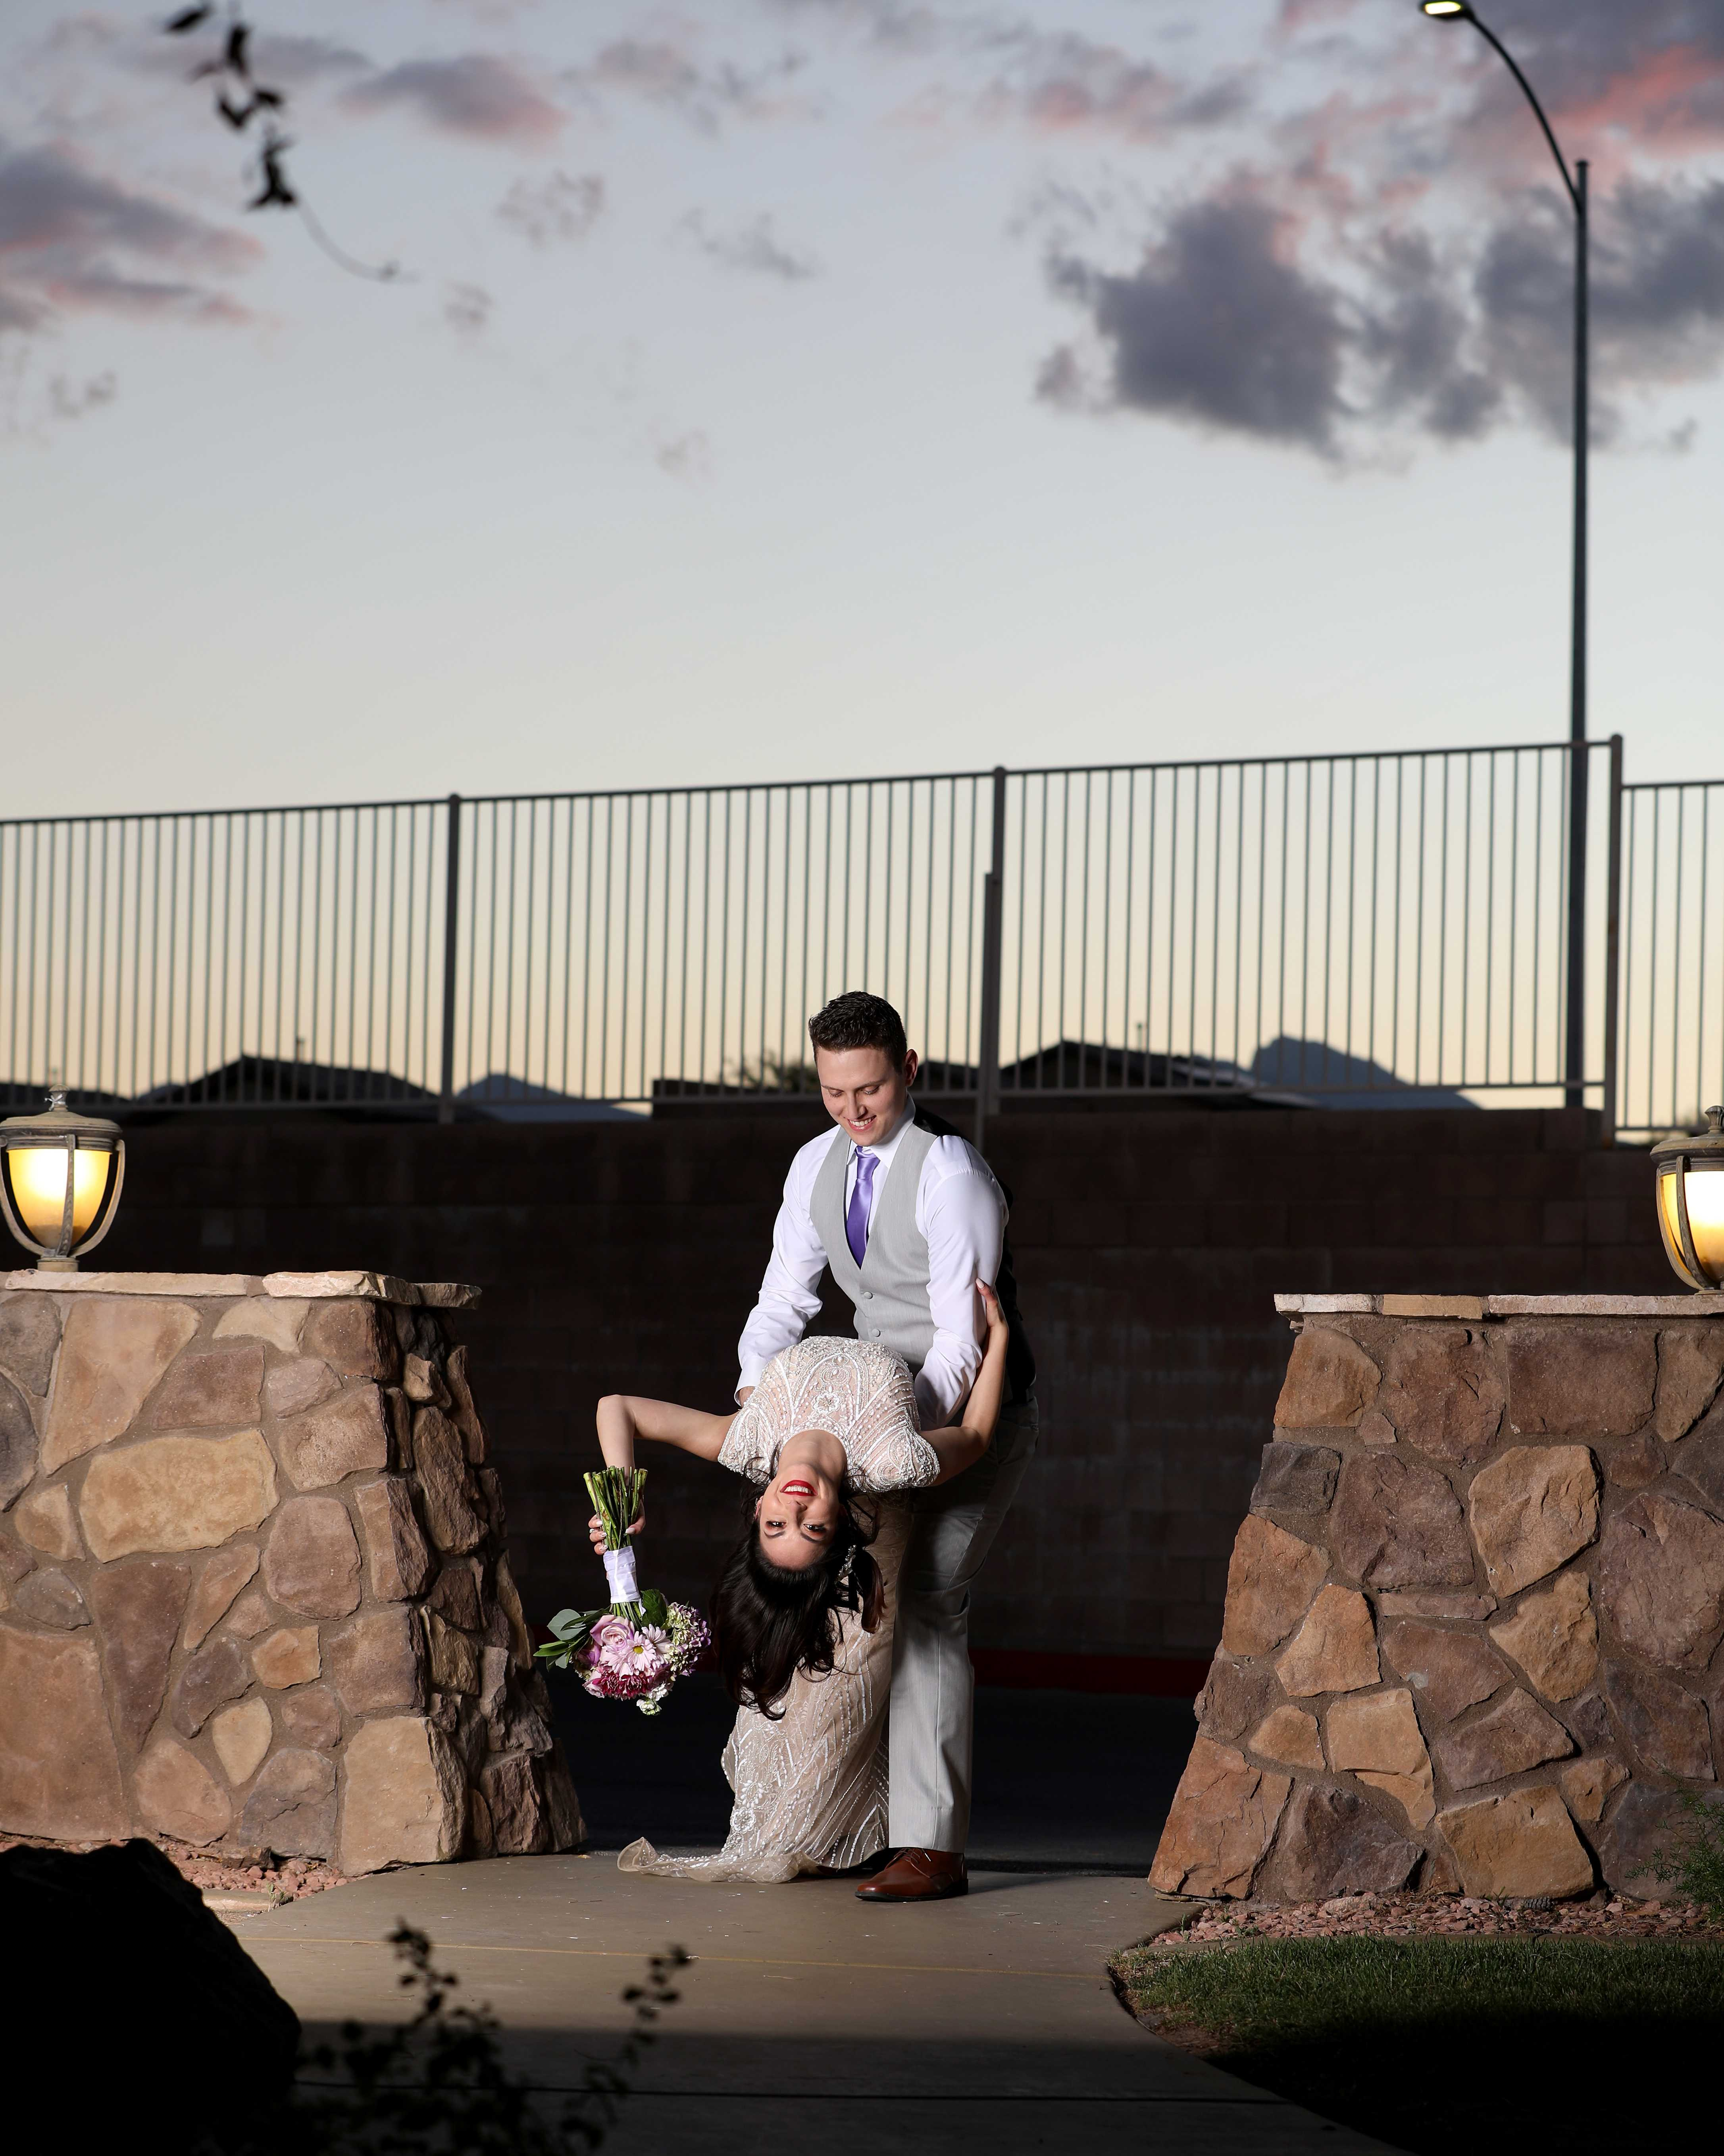 Bridal Photographer in Las Vegas